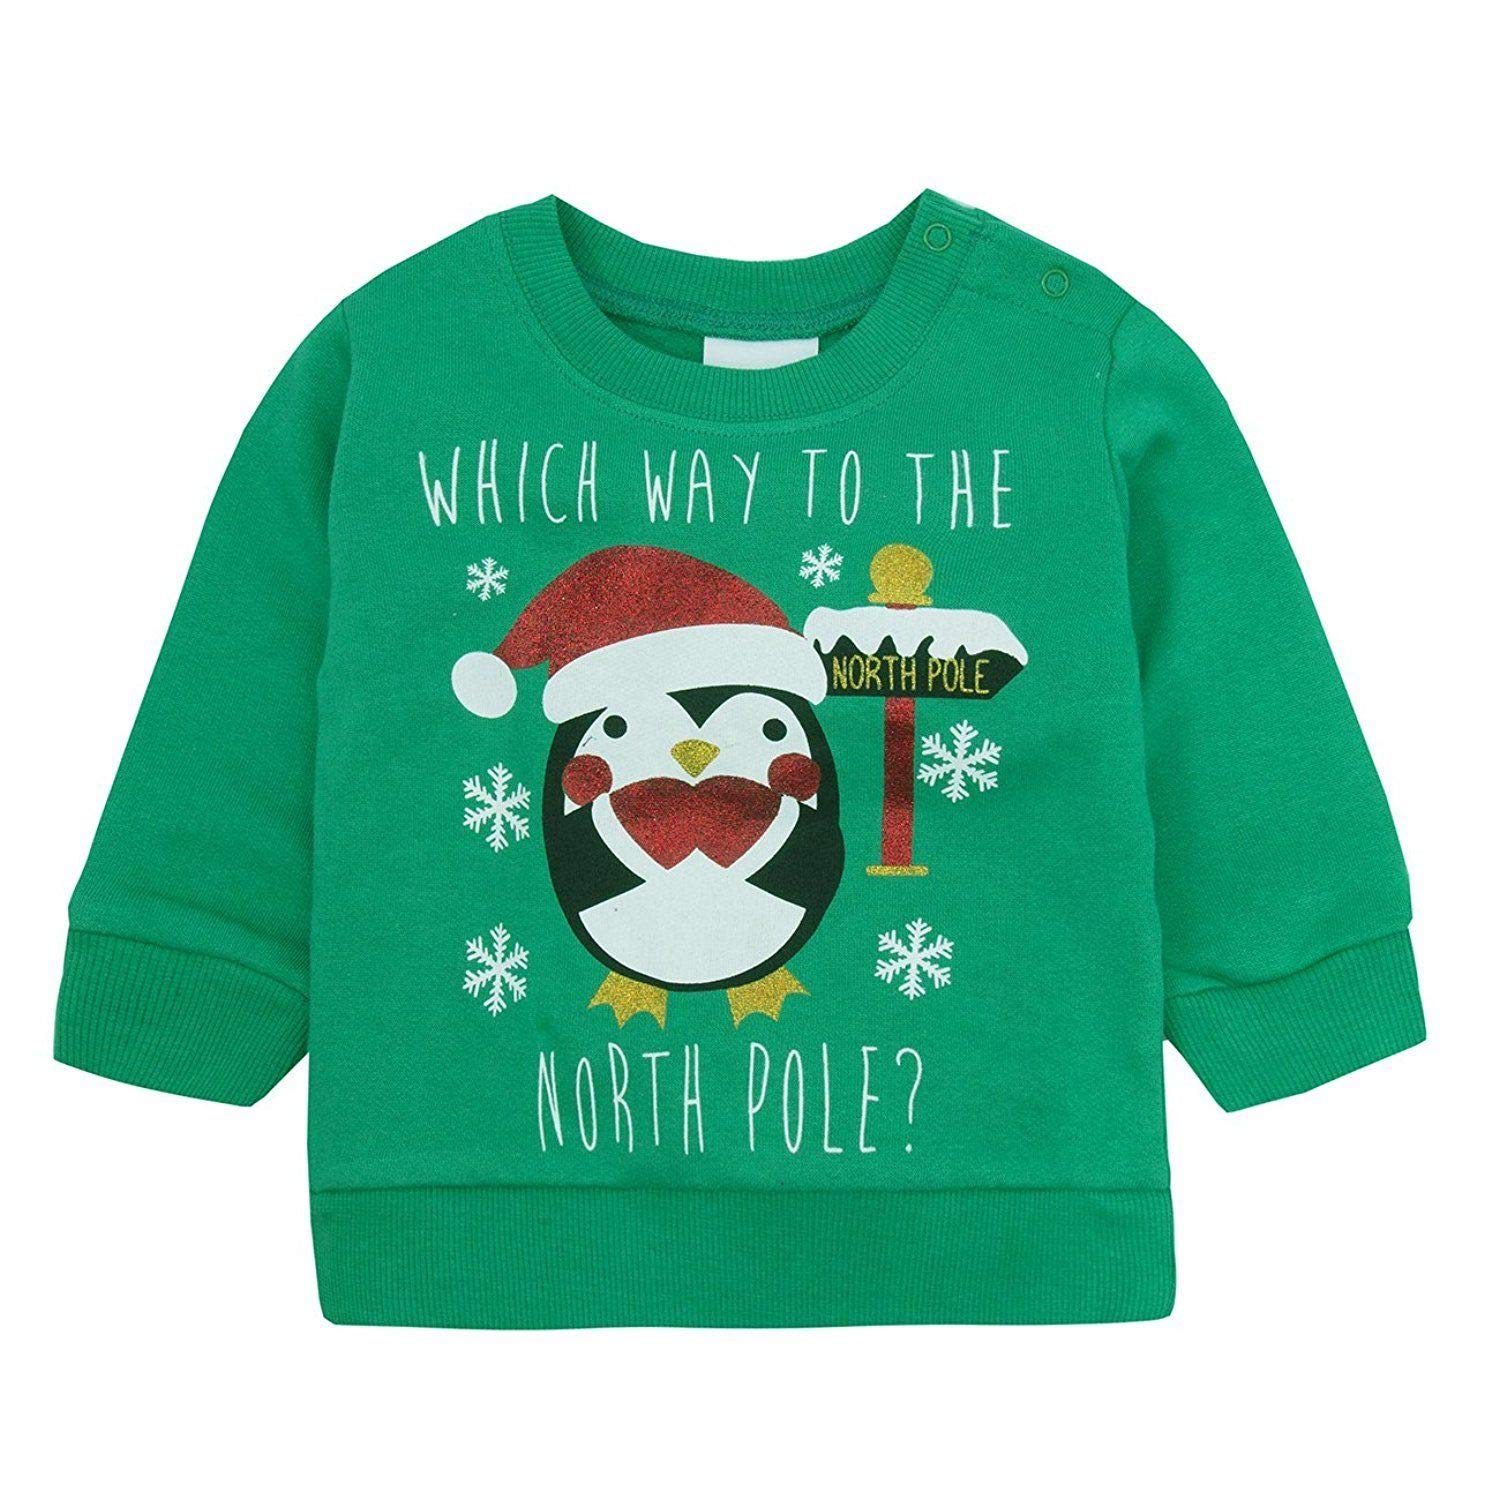 Baby Christmas Sweatshirt Jumper. Ages 6 to 24 Months